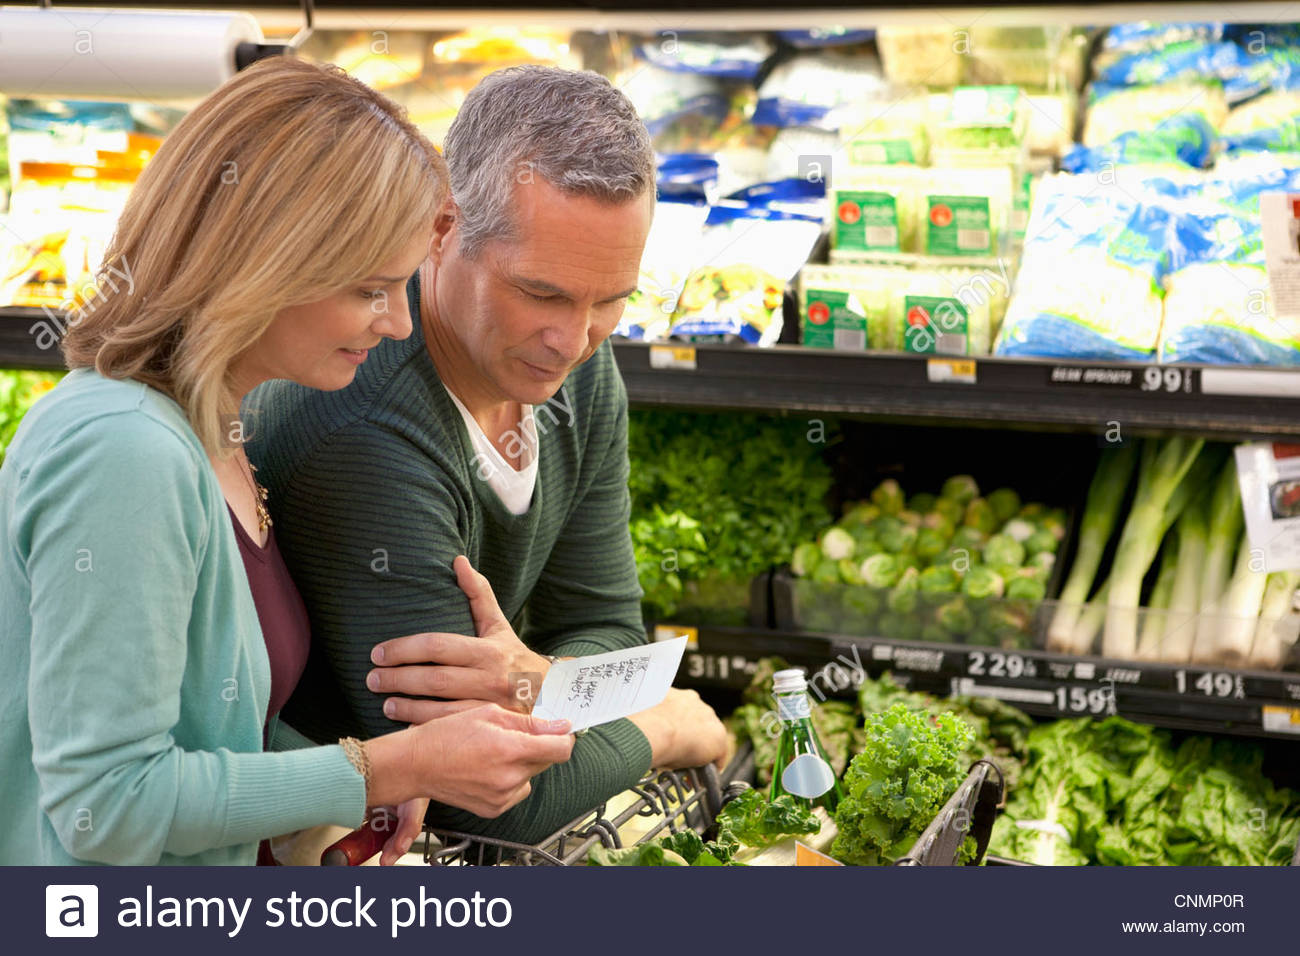 Couple checking grocery list in supermarket - Stock Image